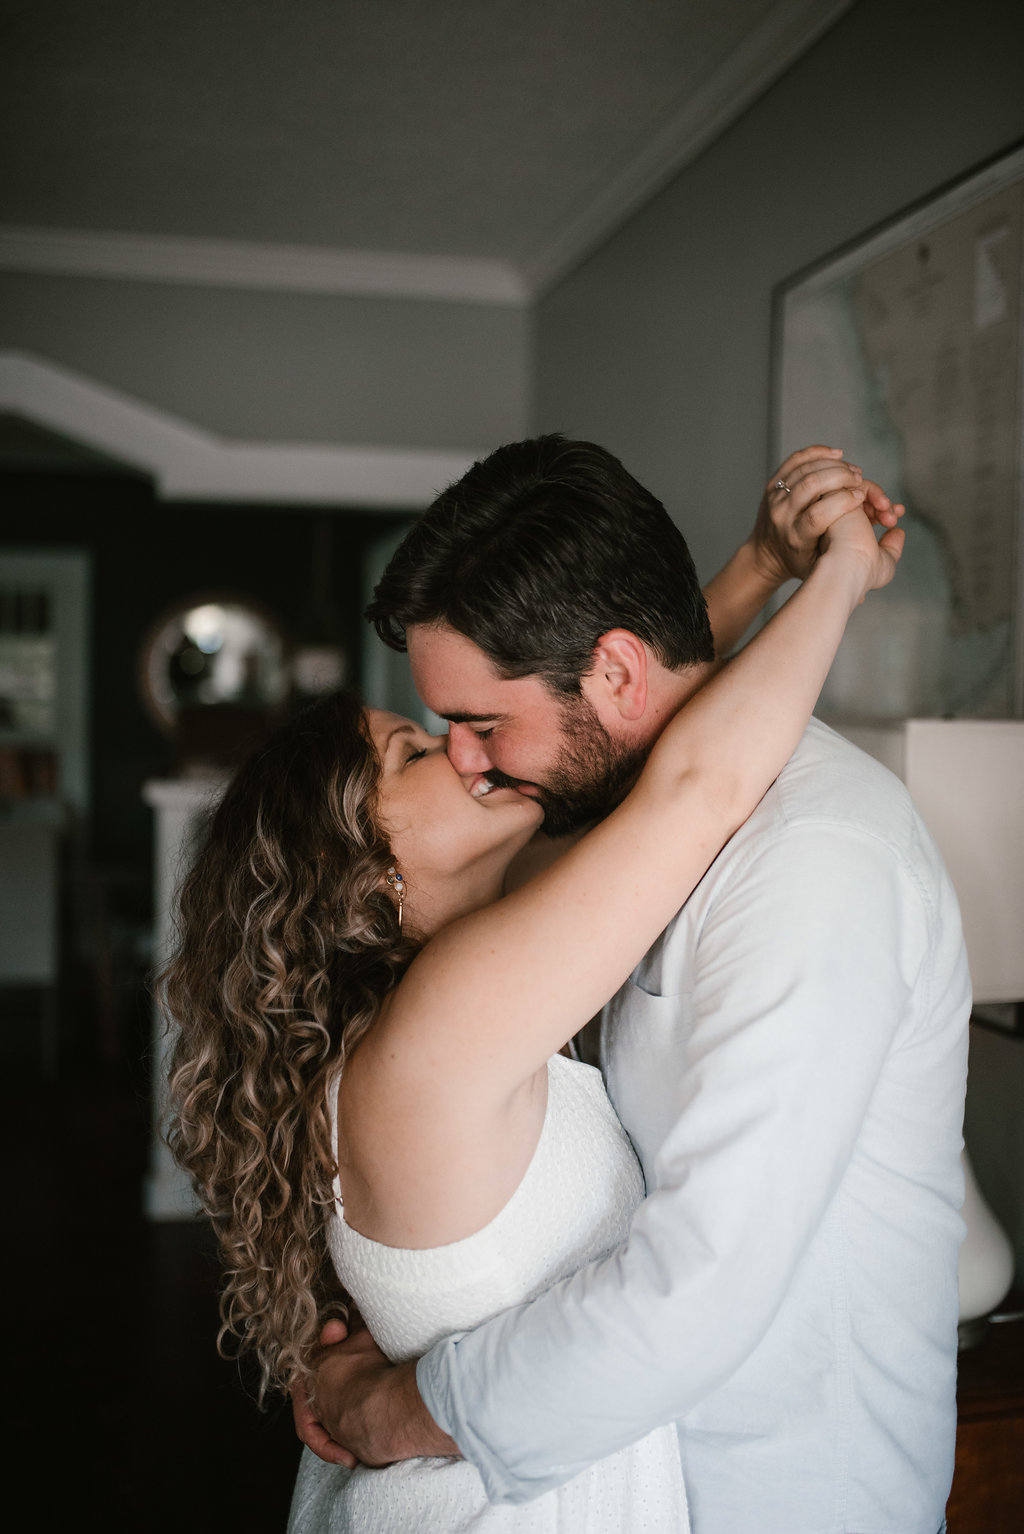 Gina-Robbie-In-Home-Engagement-St-Pete-142.jpg